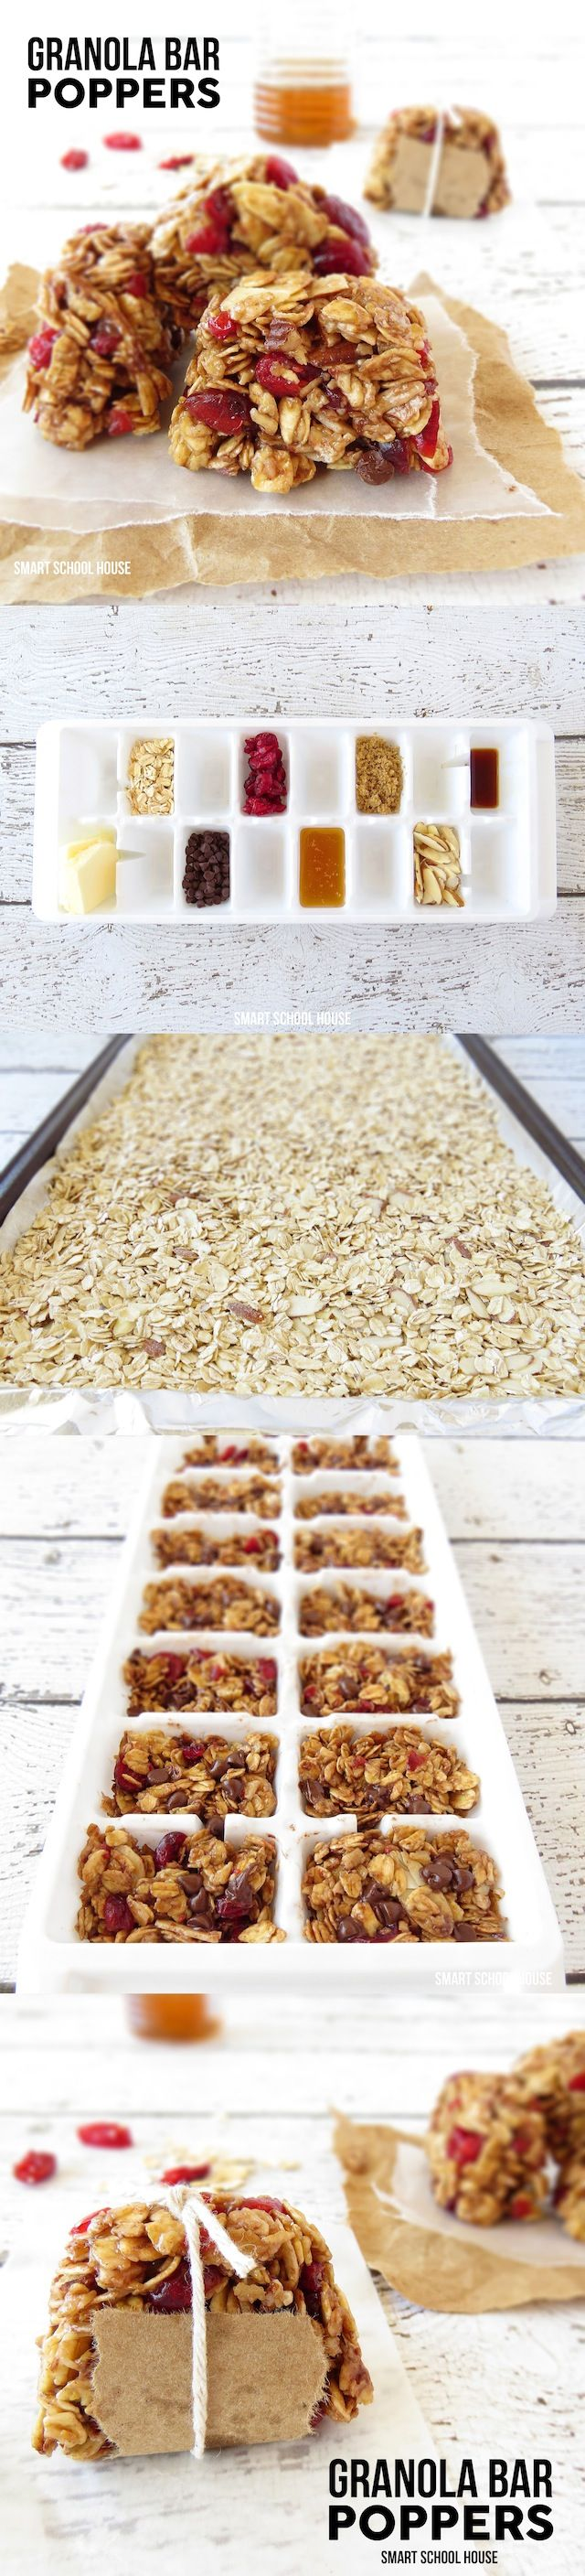 How to make Granola Bar Poppers in an ice cube tray